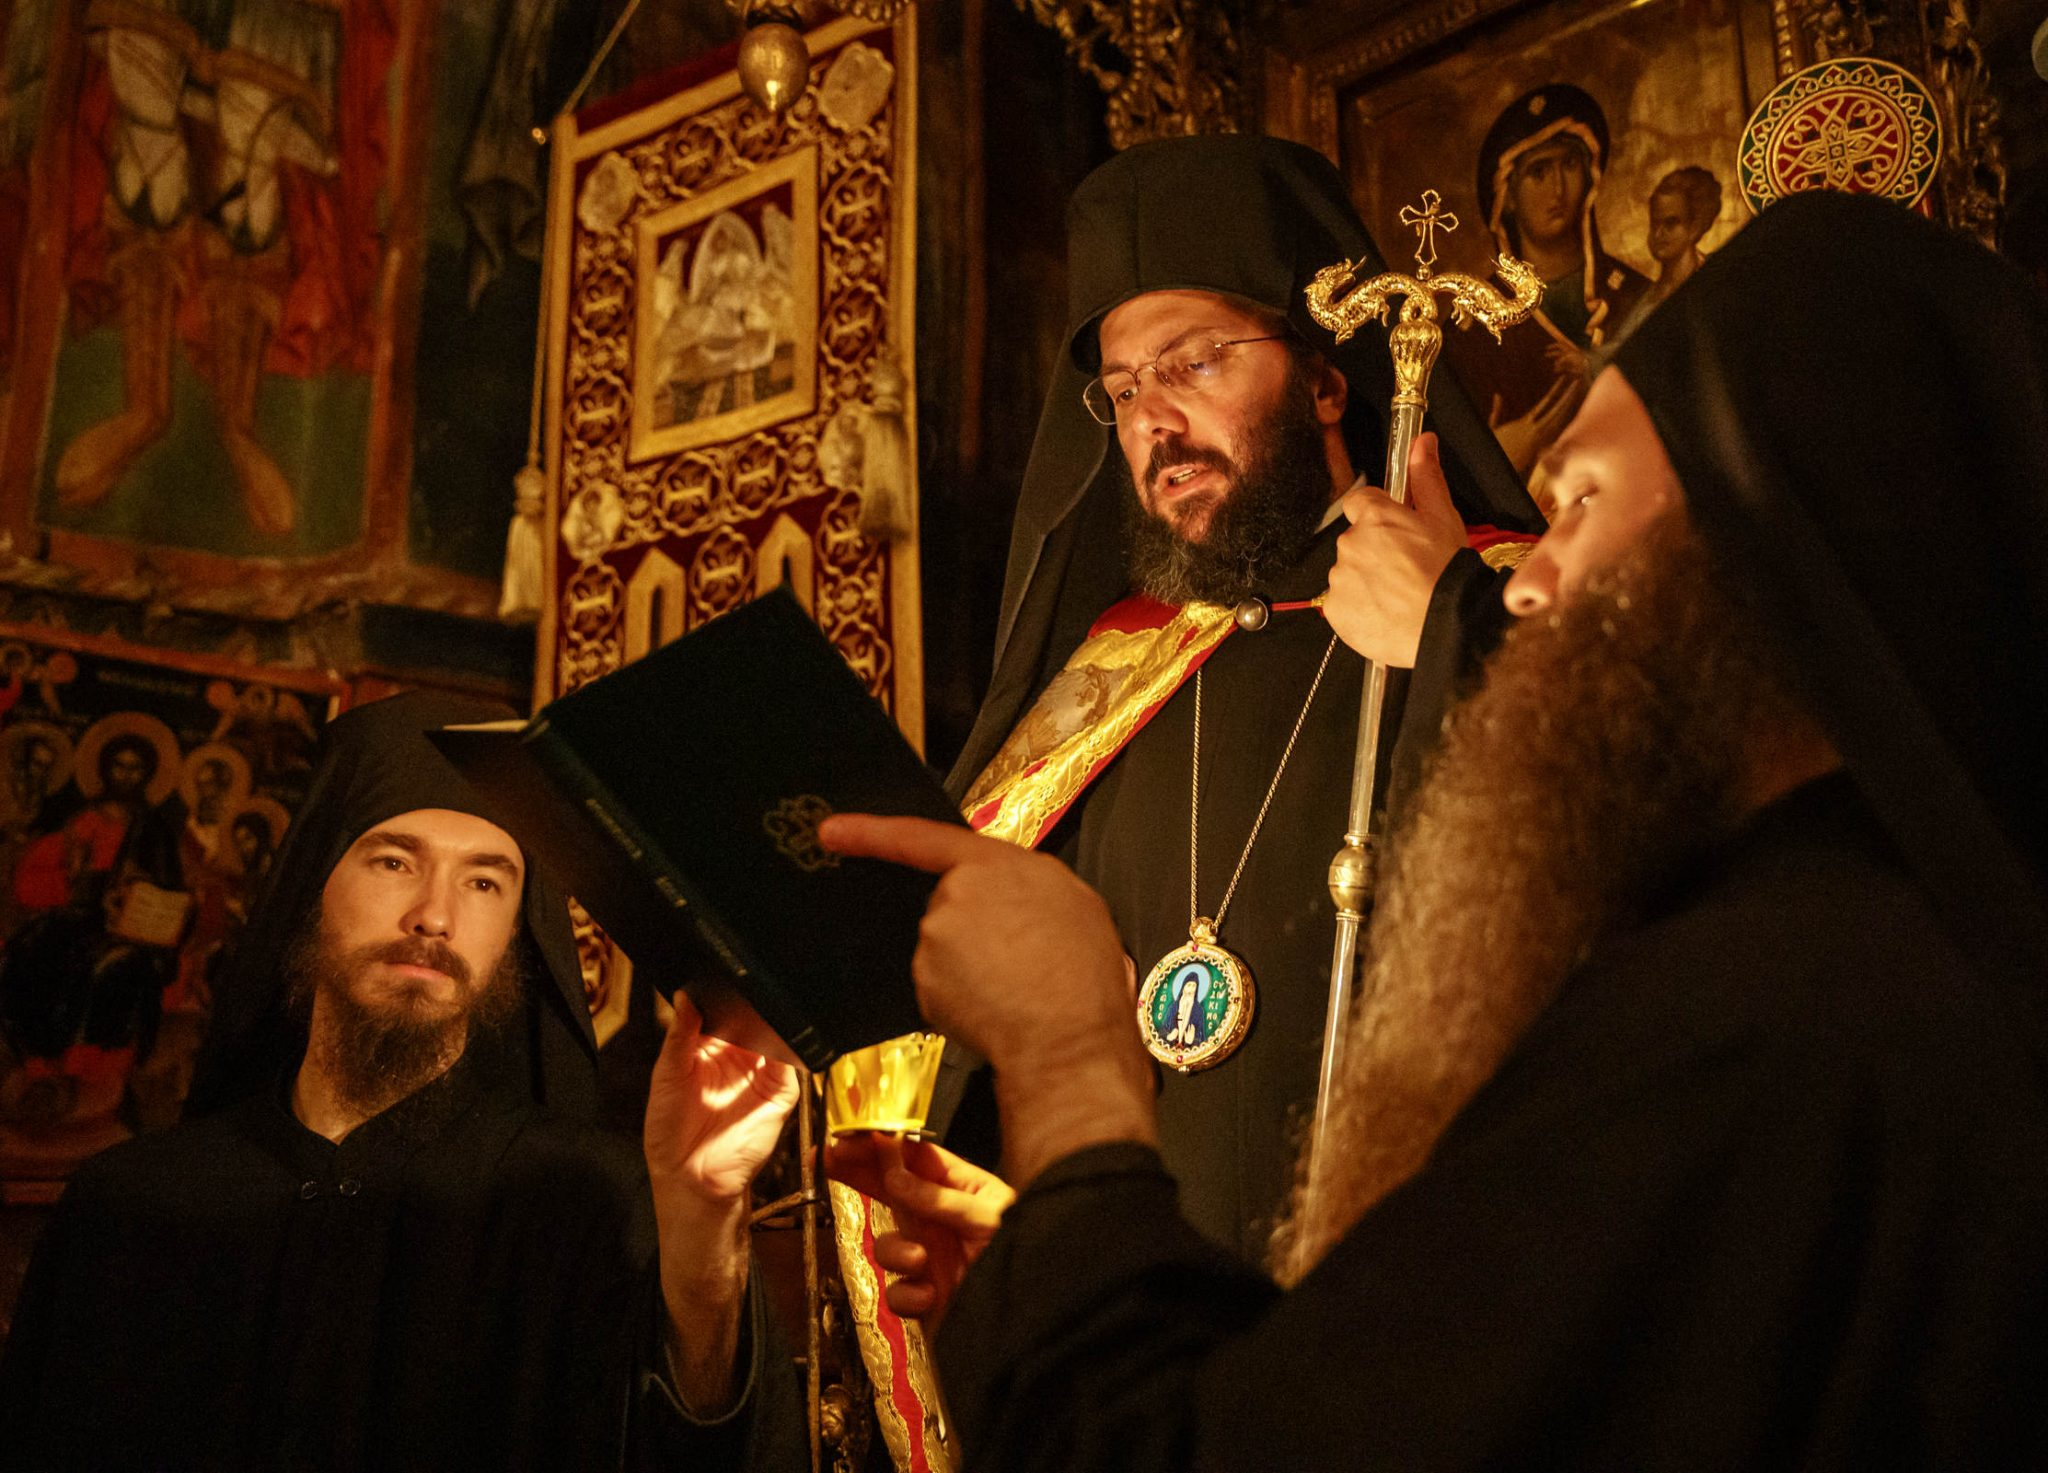 Saint Evdokimos: the biggest known unknown saint from Mount Athos - Full Photo Report